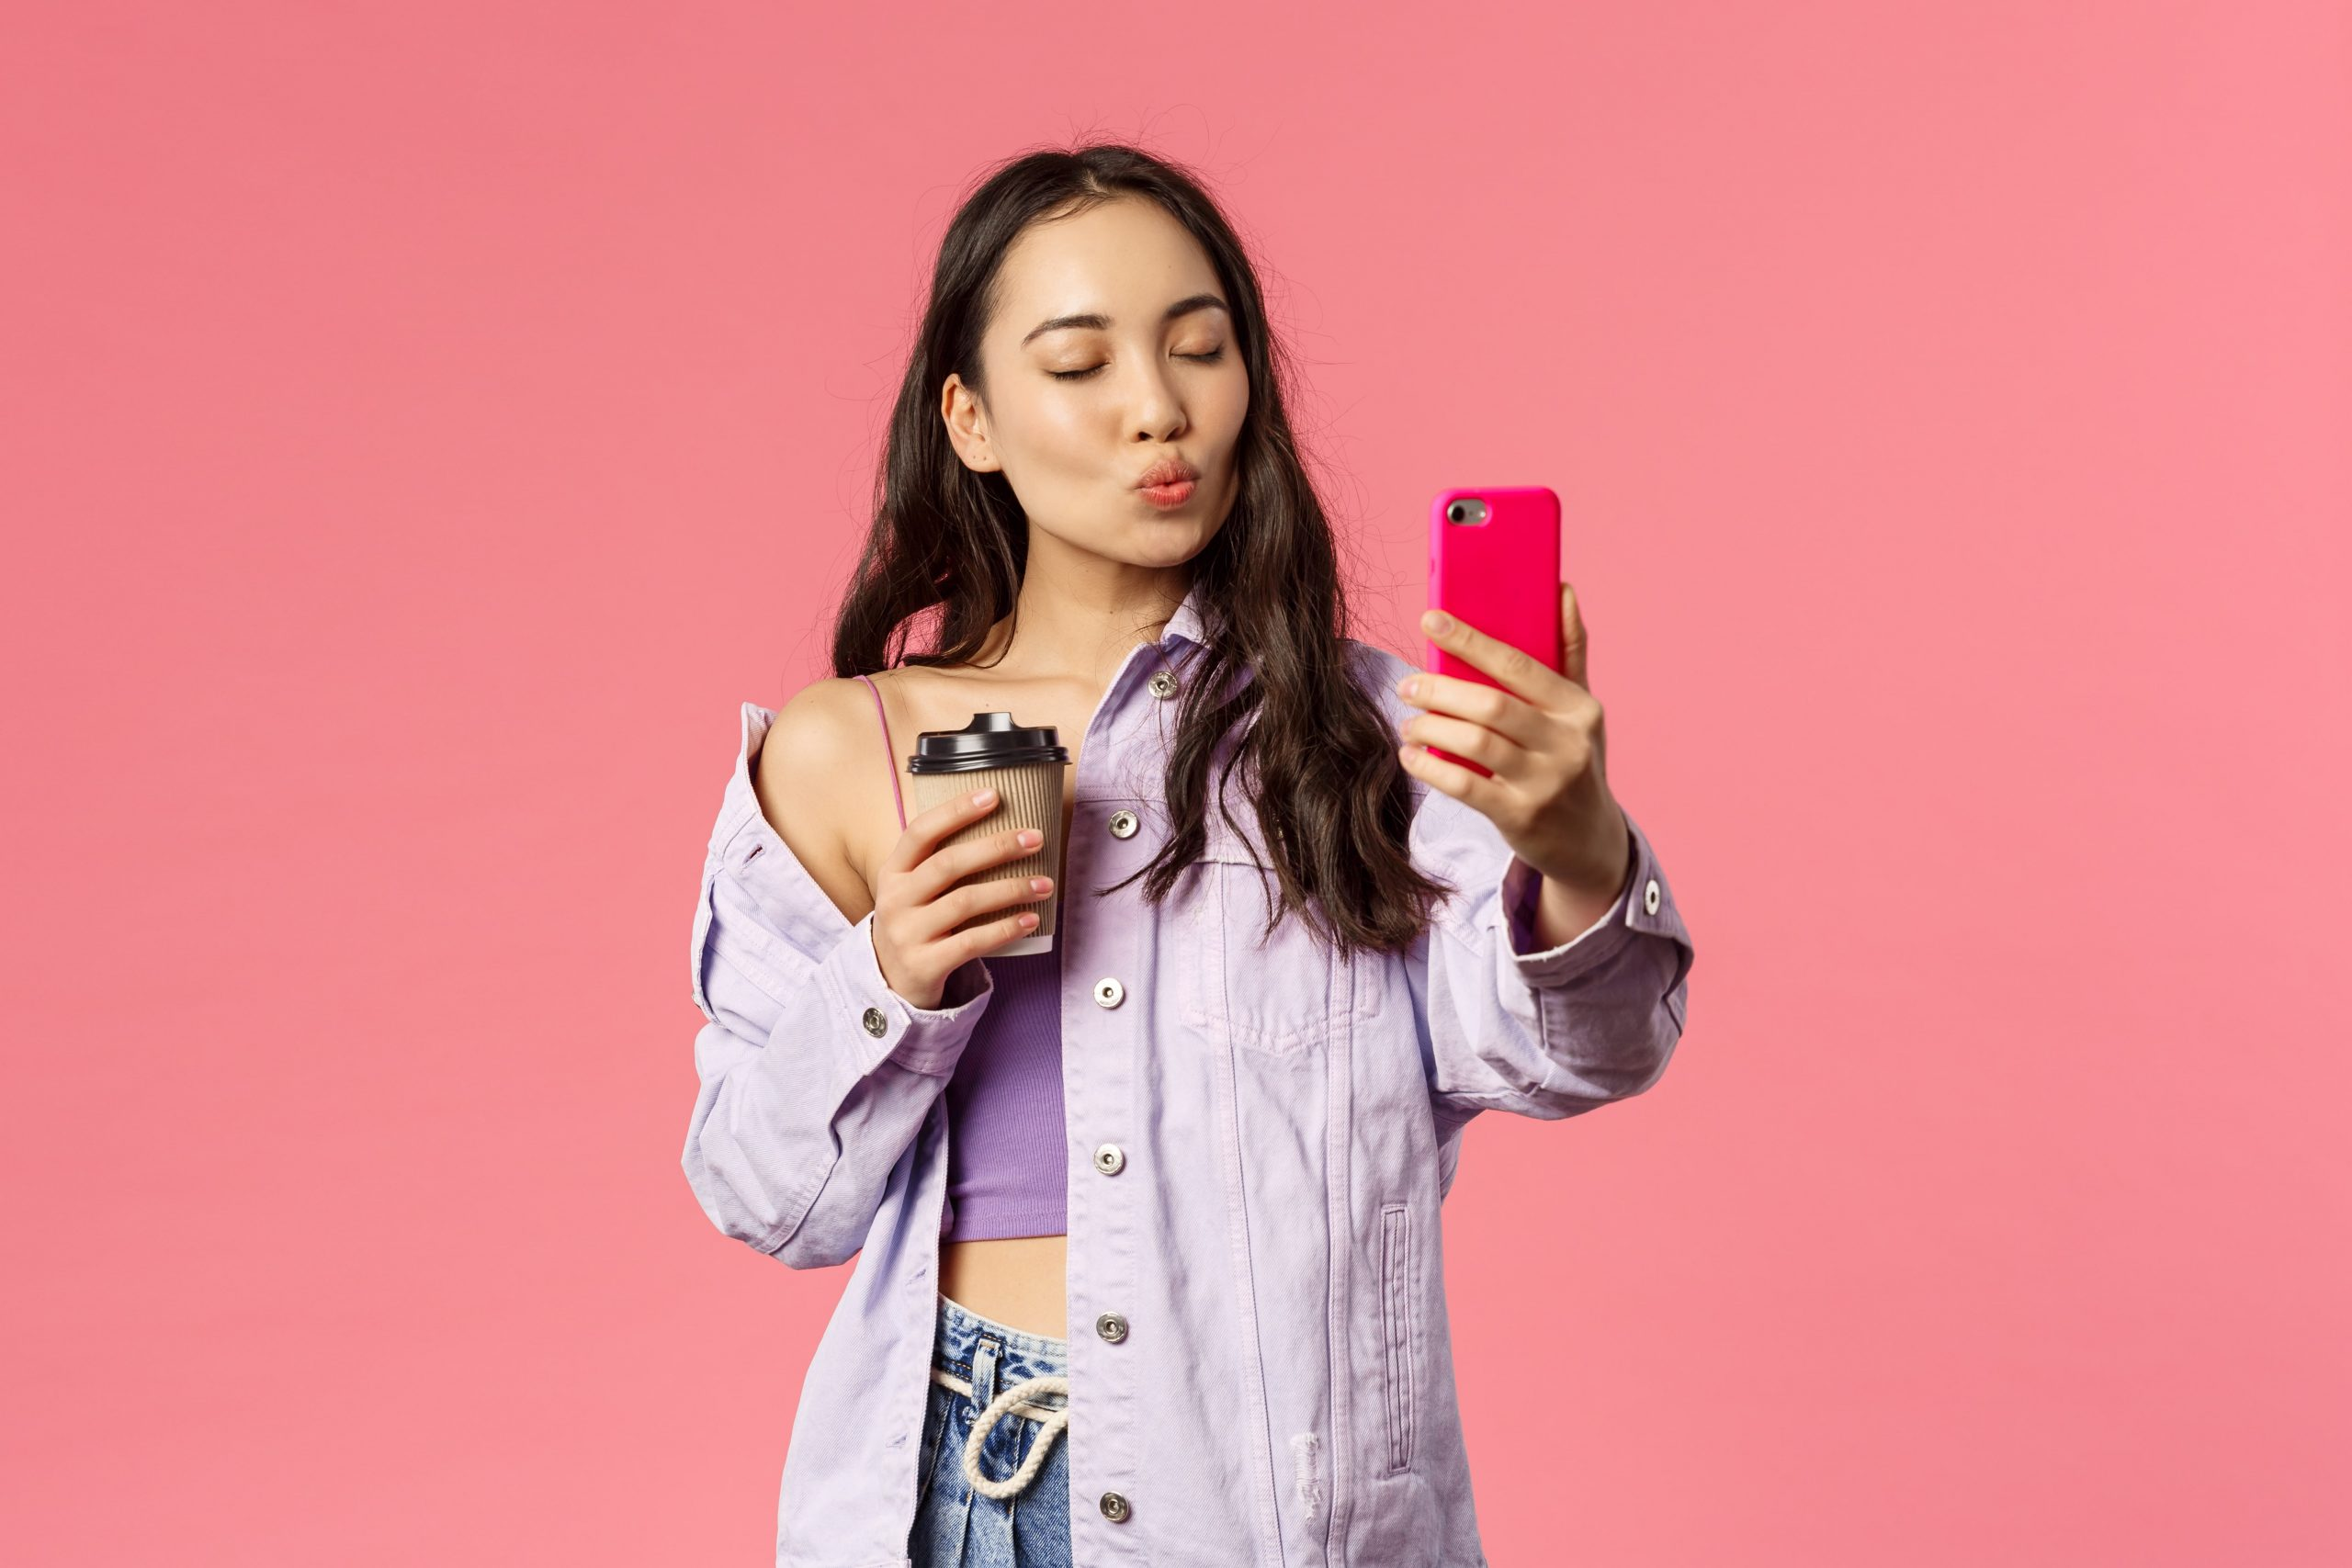 influencer taking picture